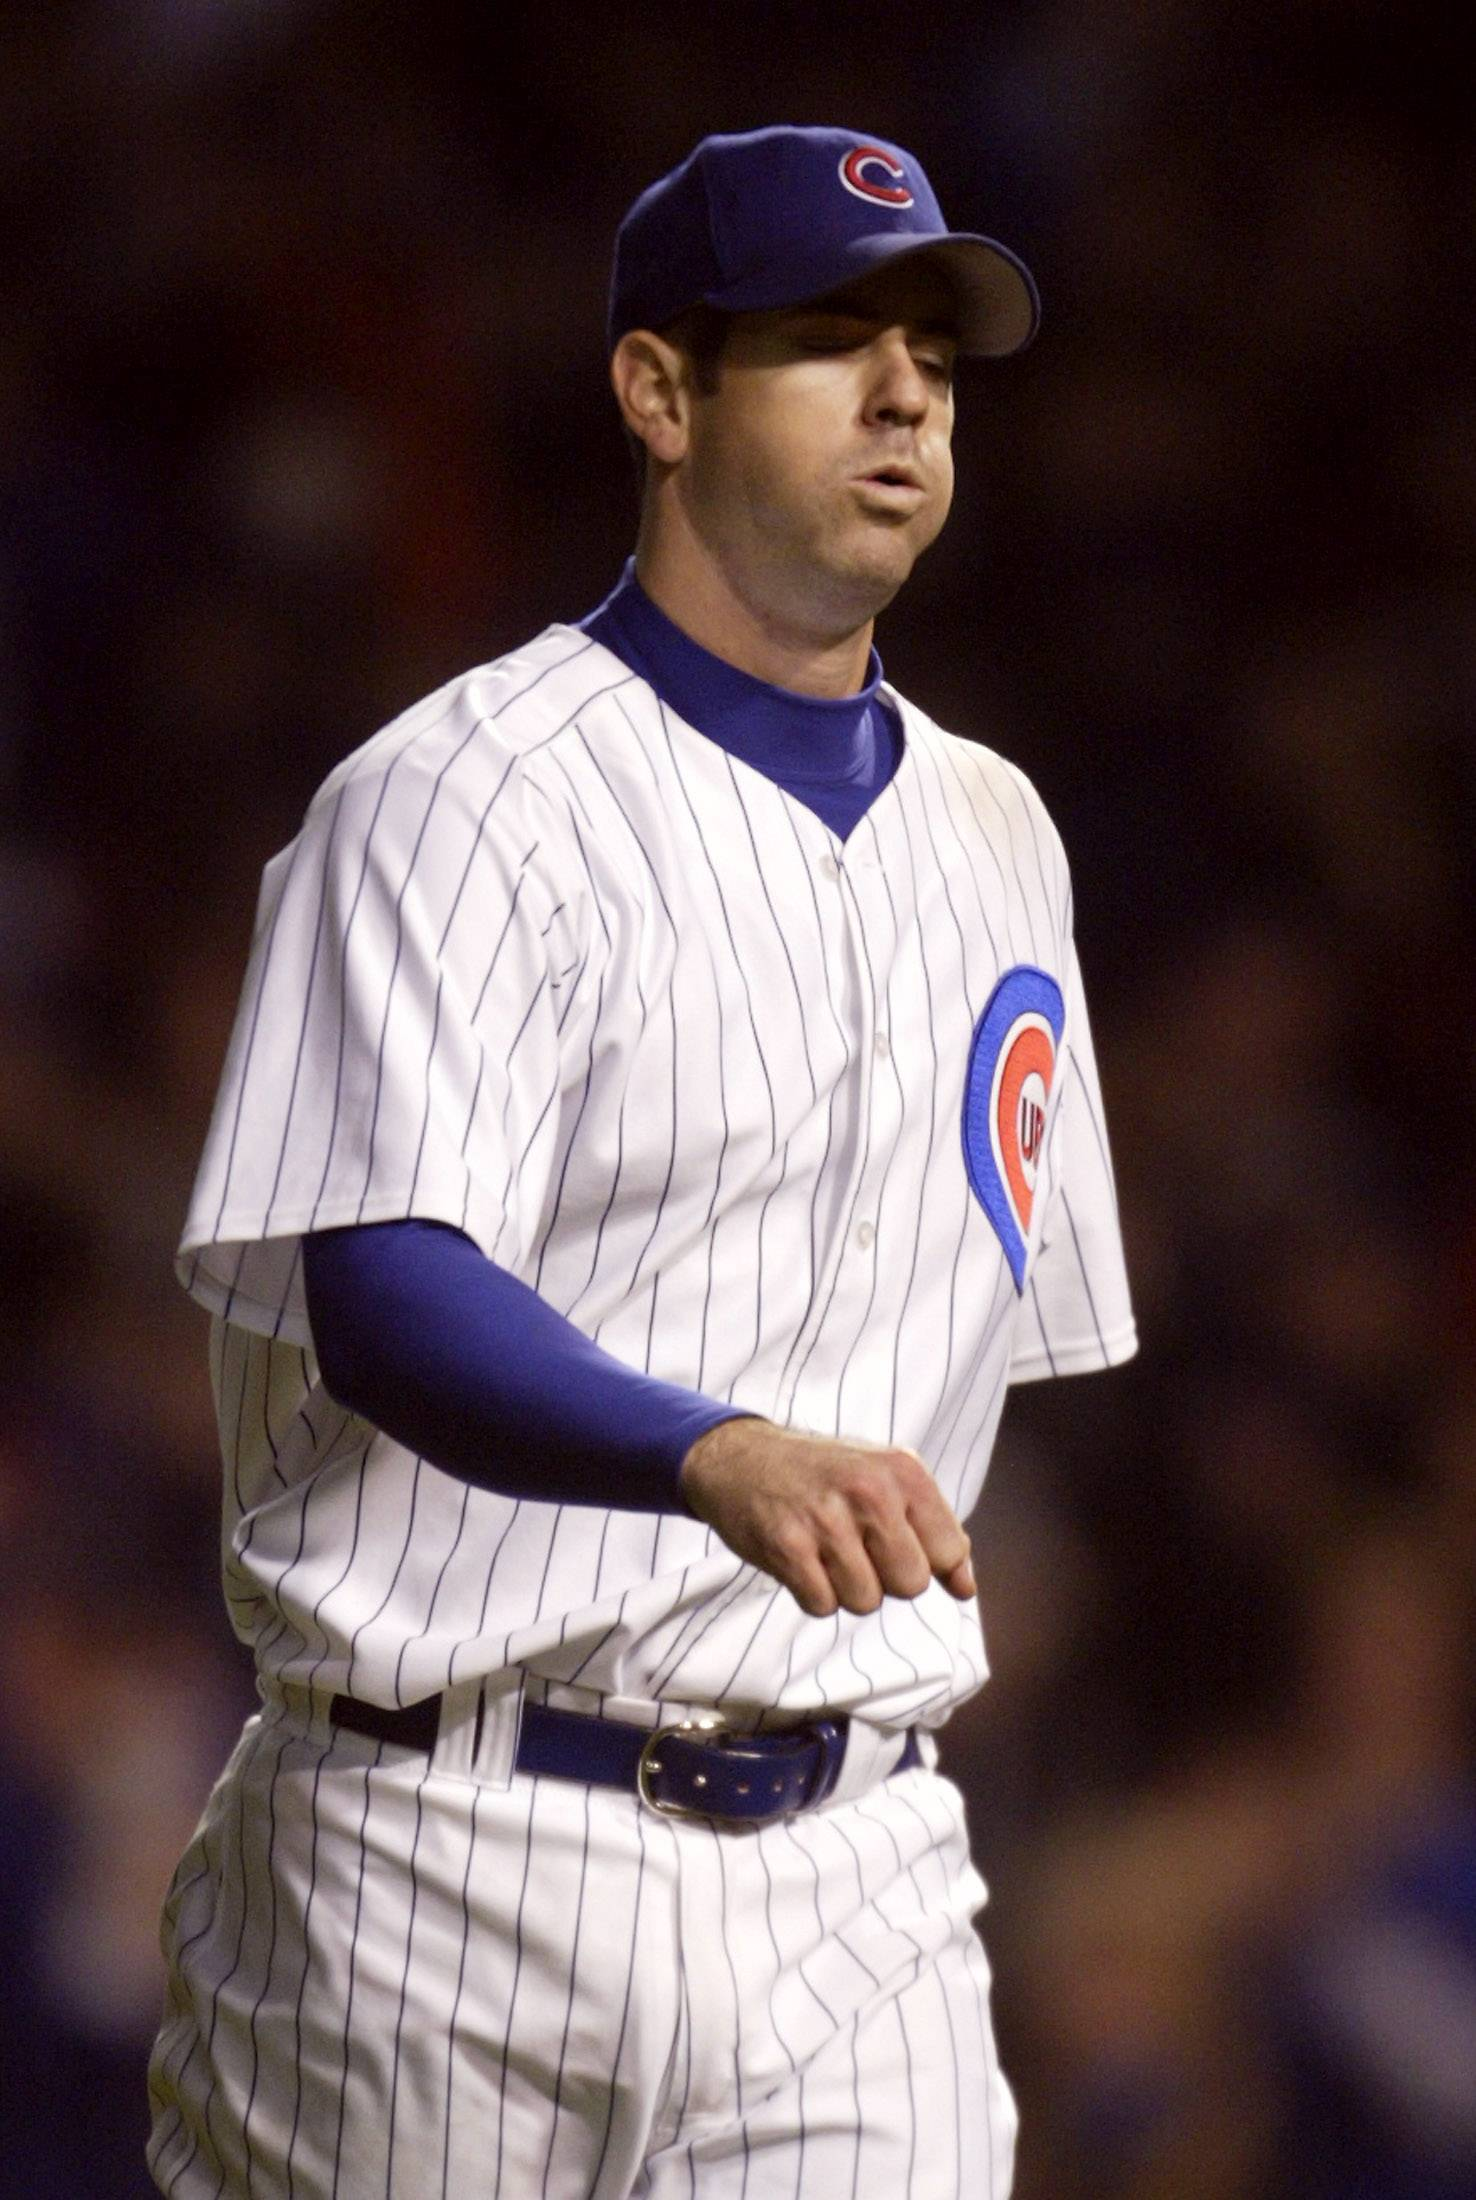 Just five outs away from a win that would have sent the Cubs to the World Series, young phenom Mark Prior gets pulled from the sixth game of the 2003 National League championship series. The Cubs lost the game, and the series, and Prior was never the same.